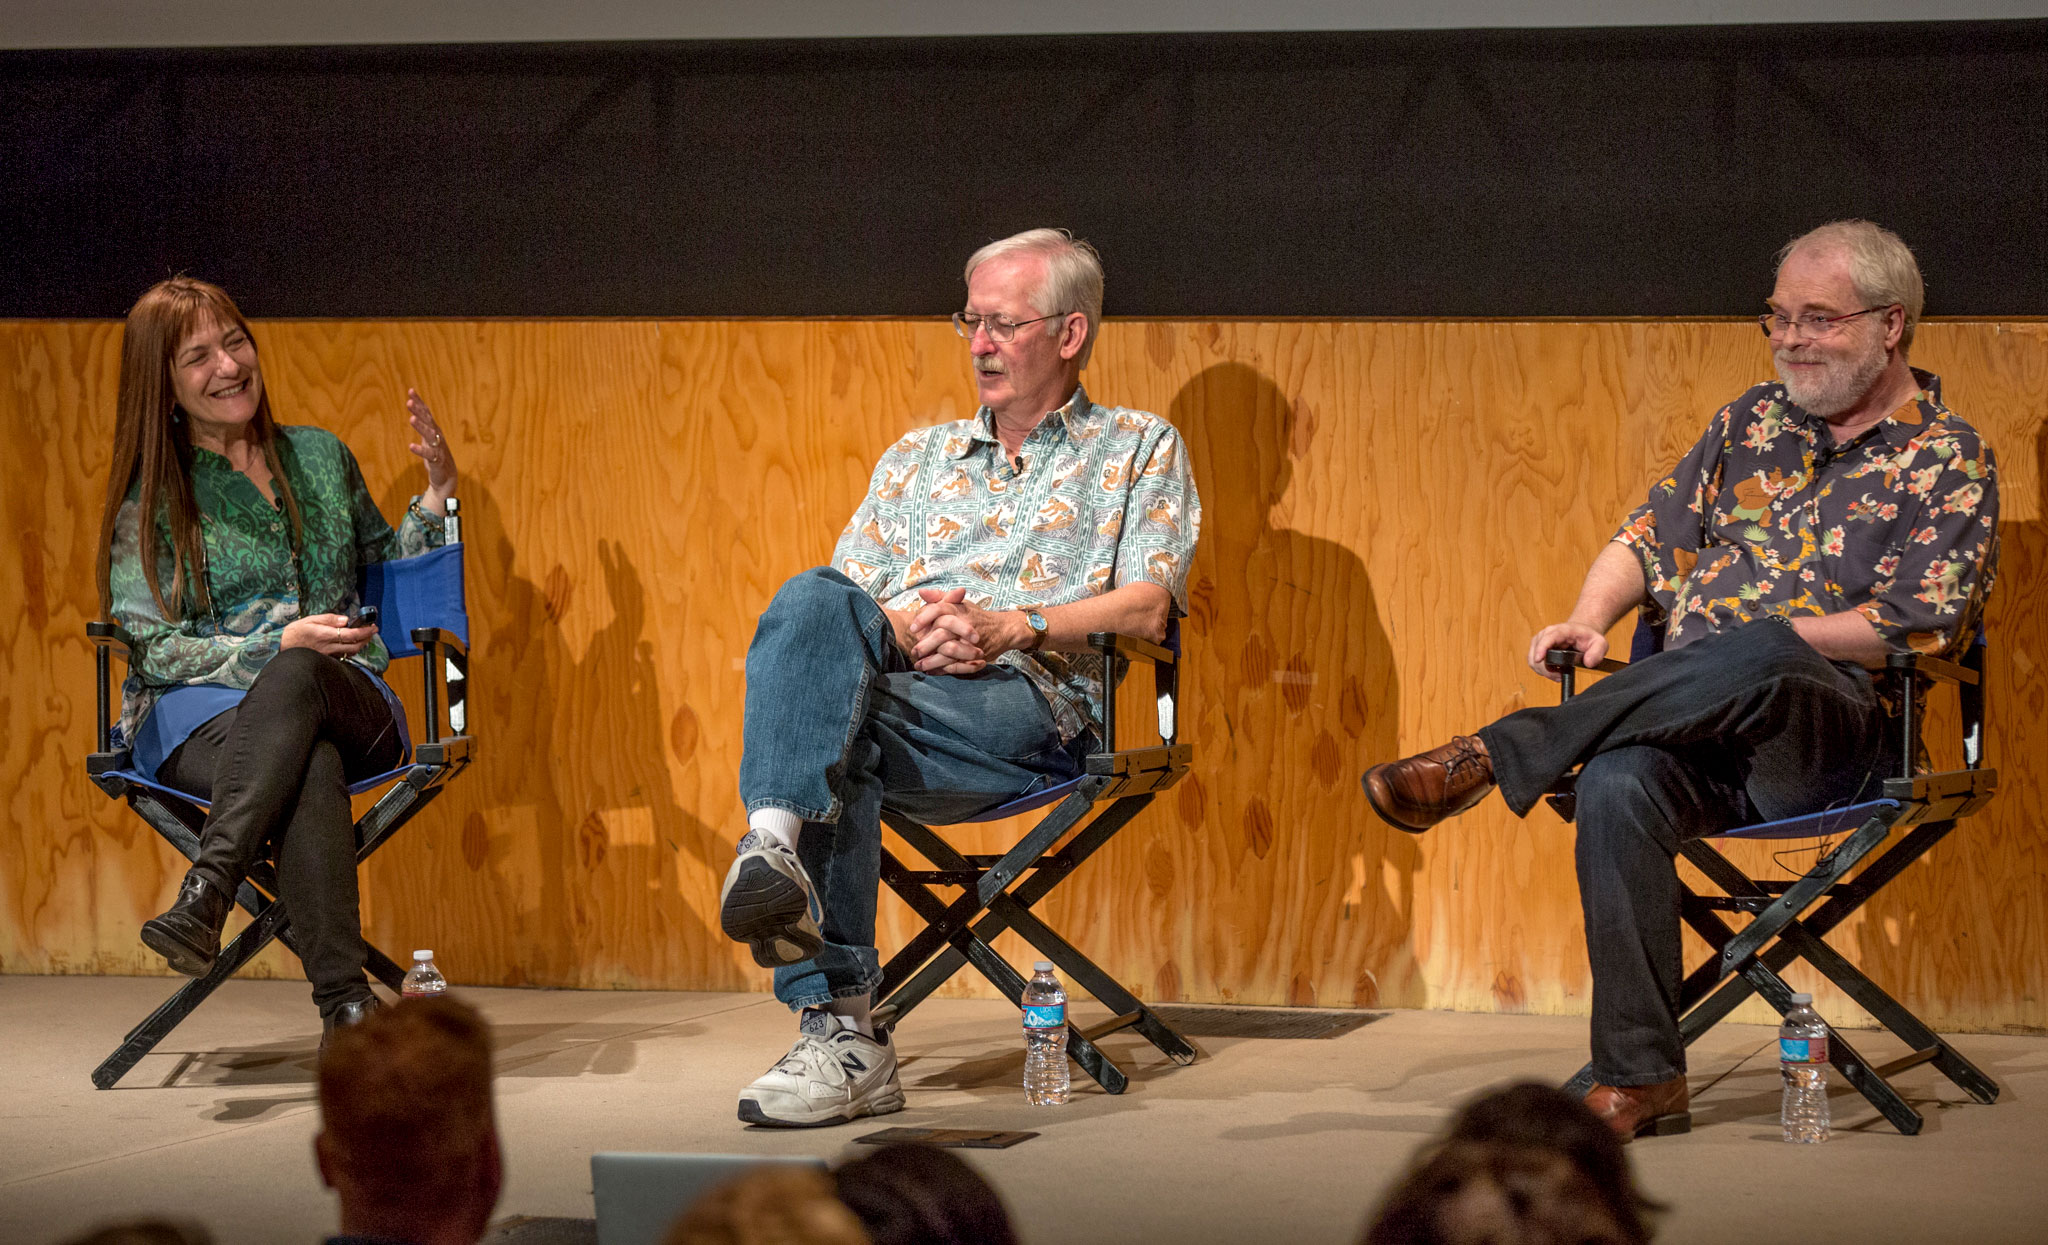 Disneyland Resort Cast Members Learn About the Making of 'Moana' from the Filmmakers